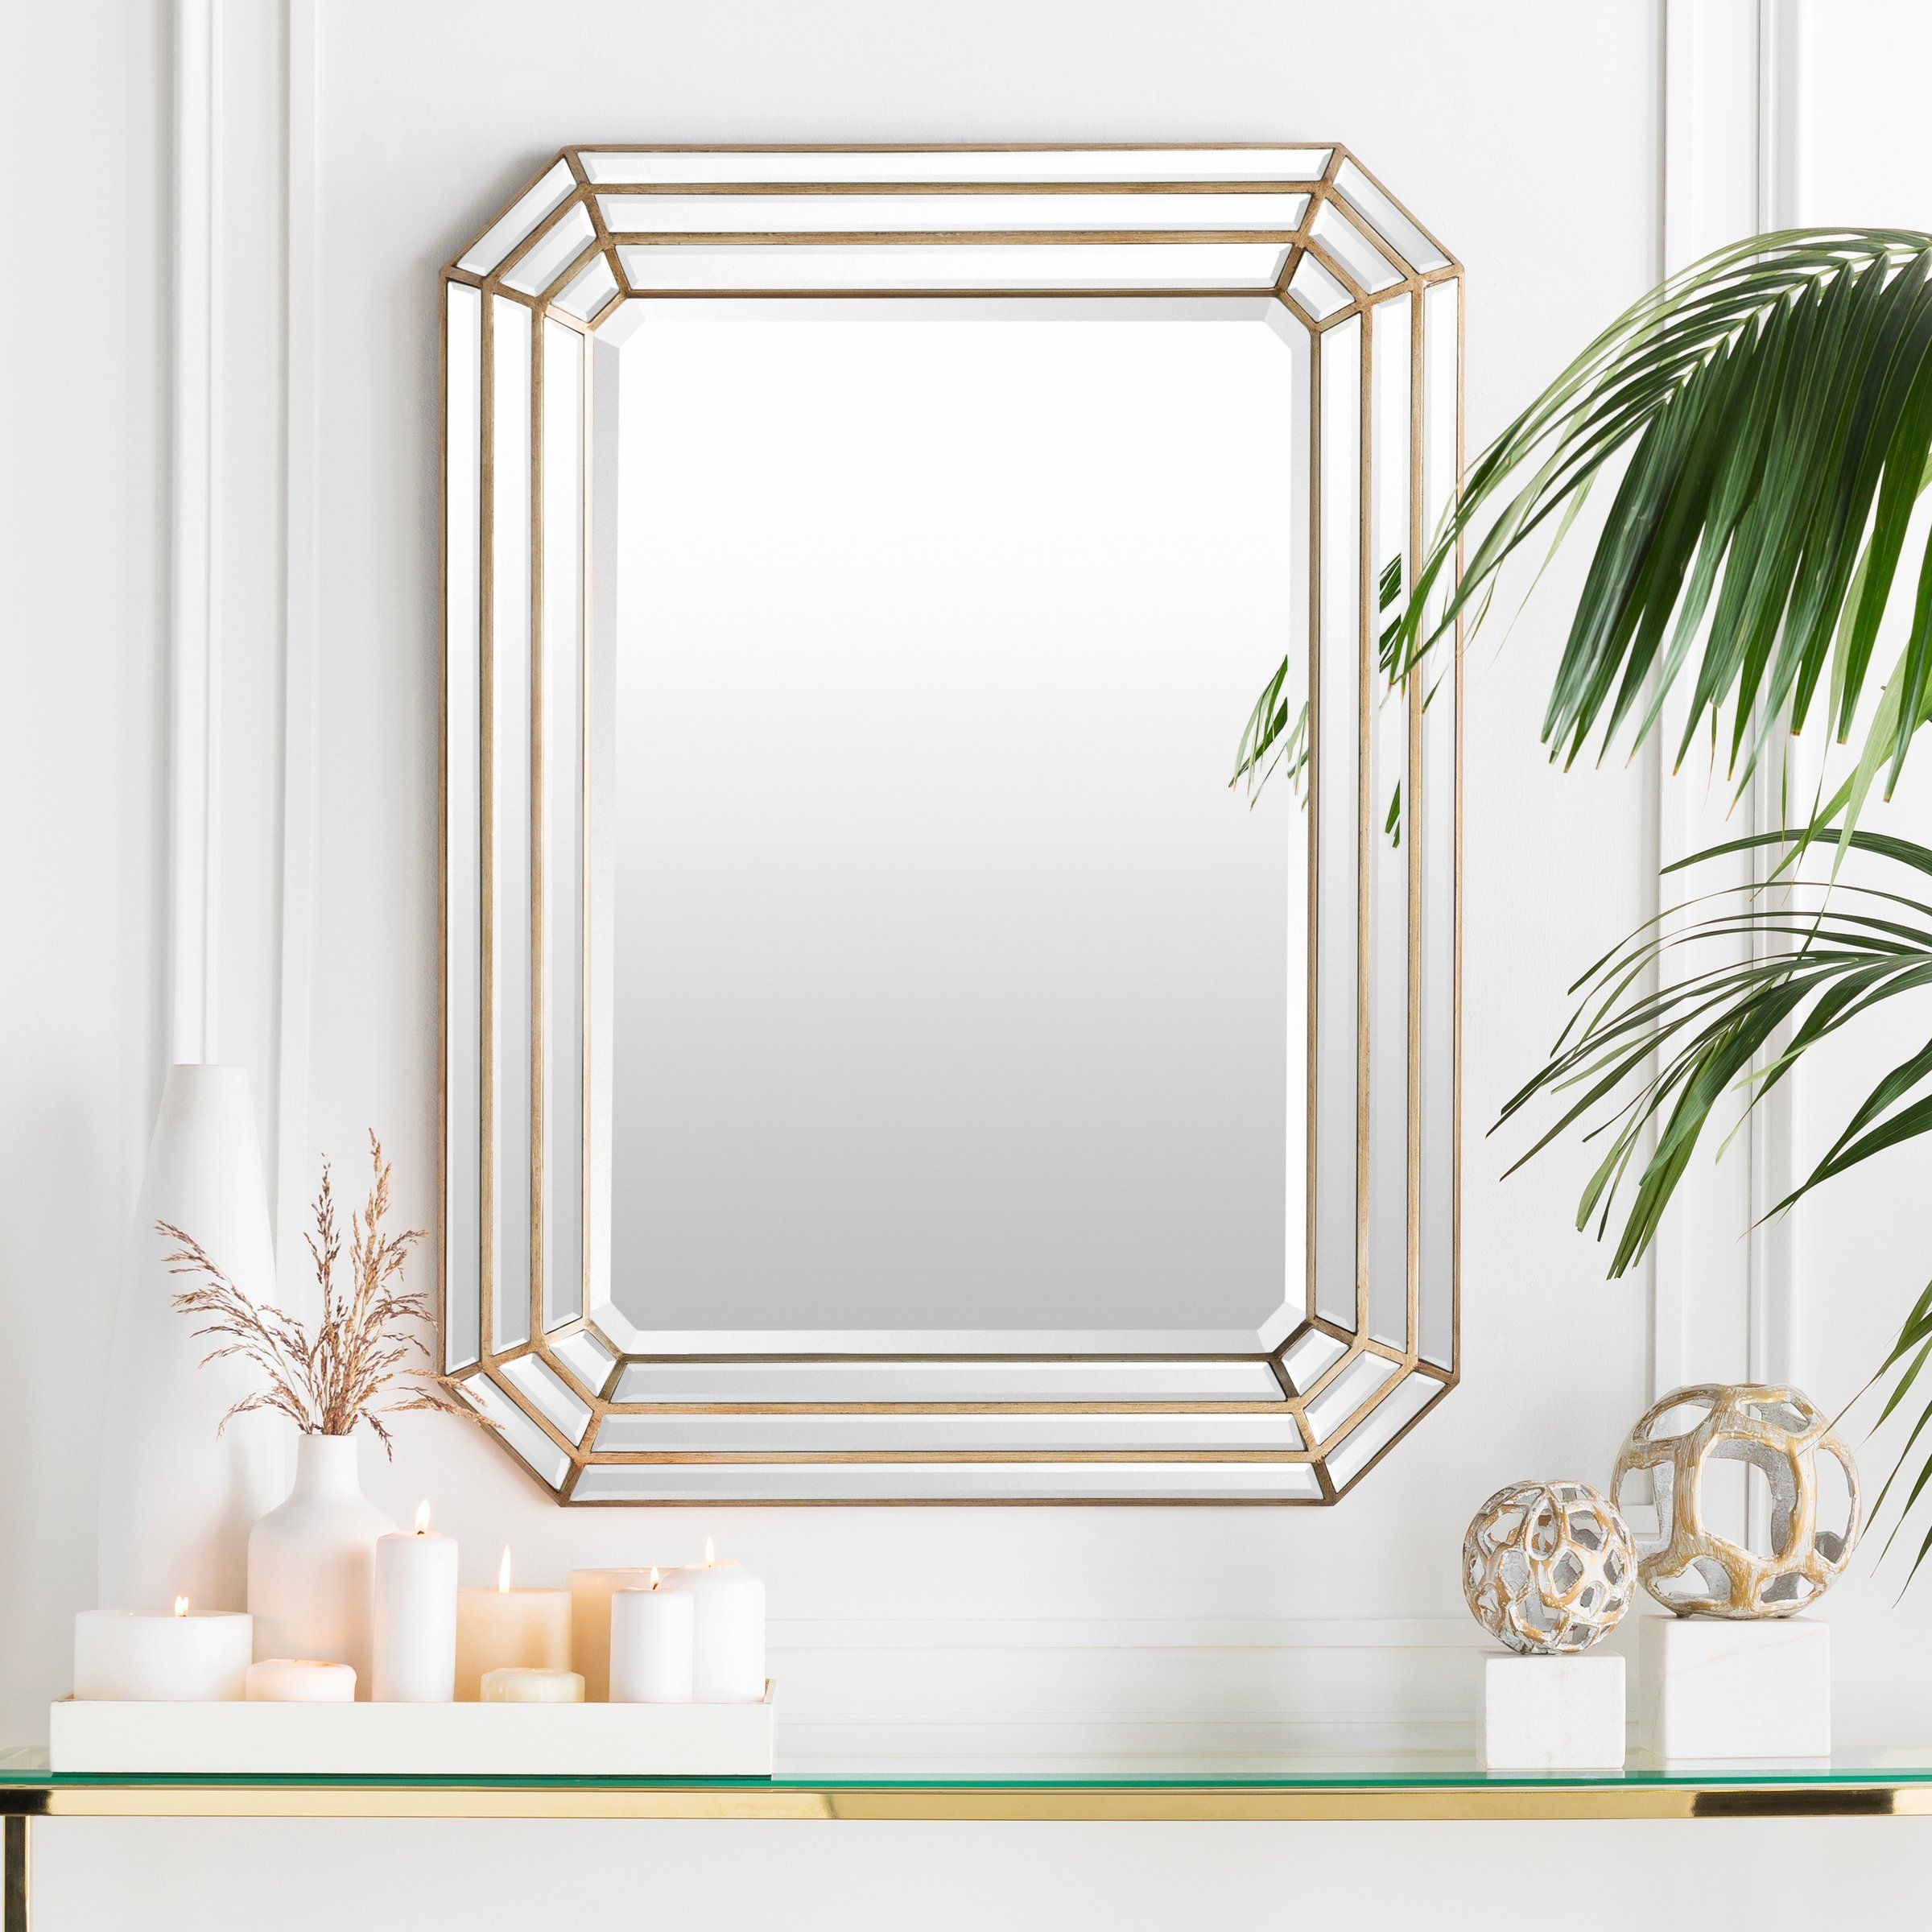 Kimora Decorative Object | M I R R O R   M I R R O R Pertaining To Willacoochee Traditional Beveled Accent Mirrors (Image 9 of 20)